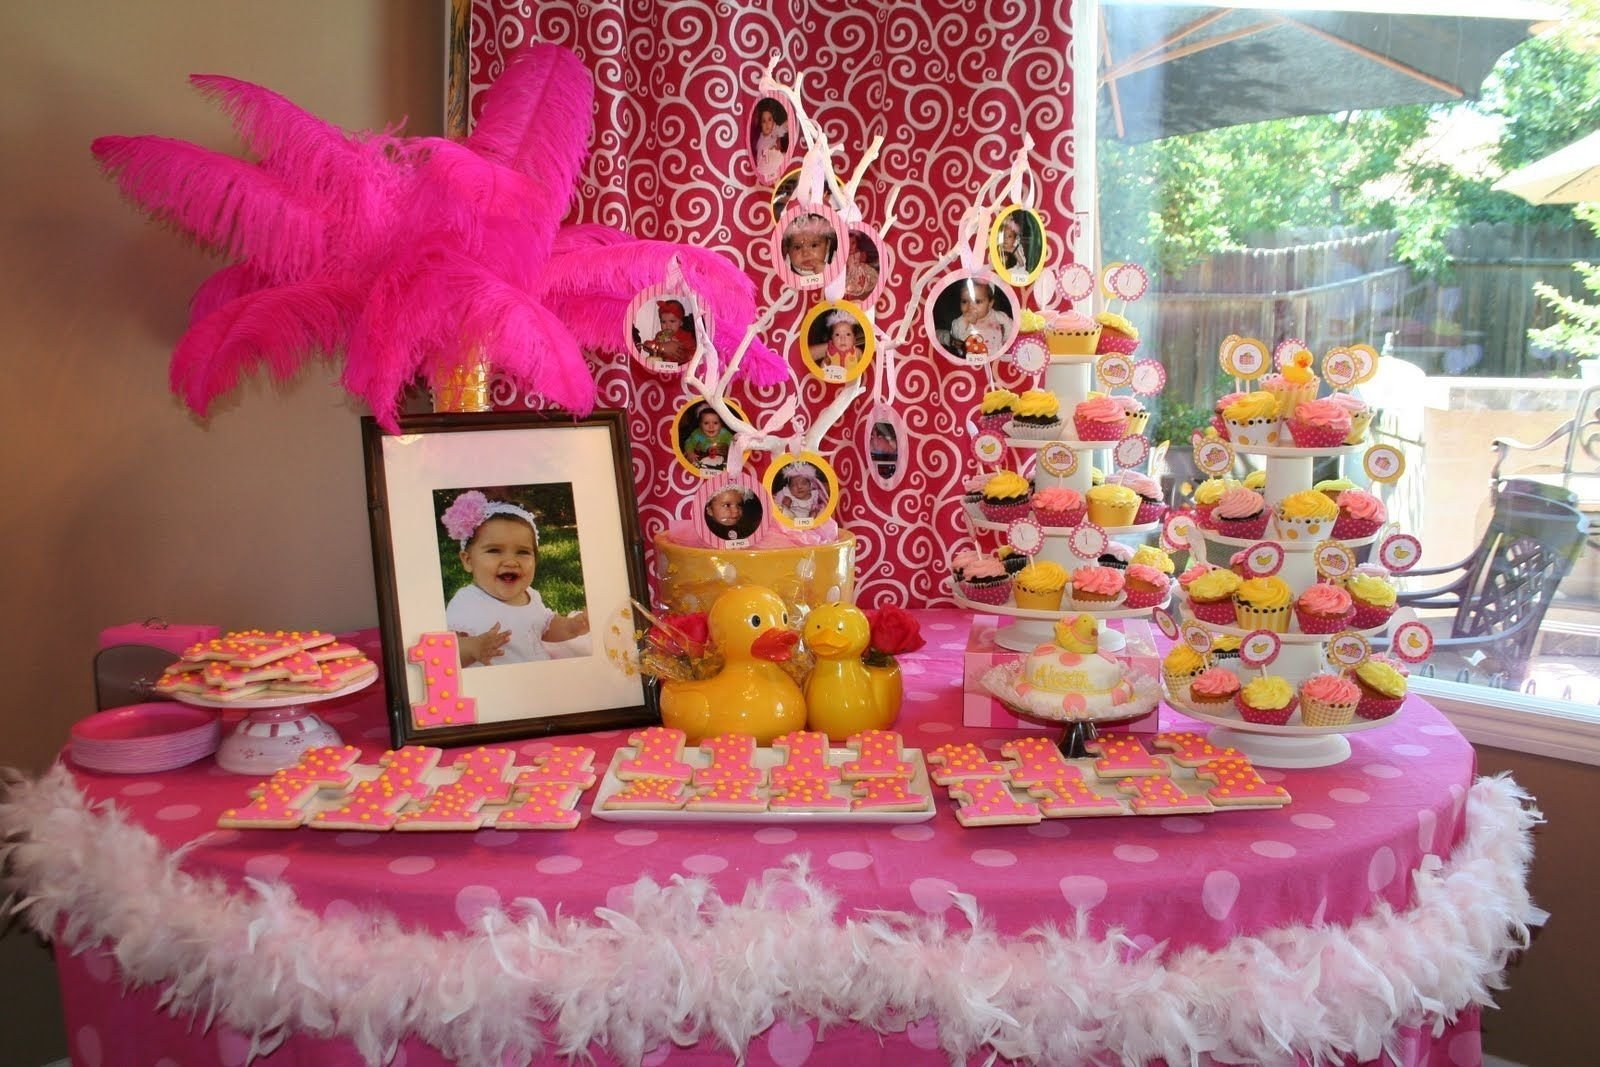 10 Lovable Baby Girl First Birthday Ideas awesome baby girl first birthday party ideas all picture of theme 5 2020